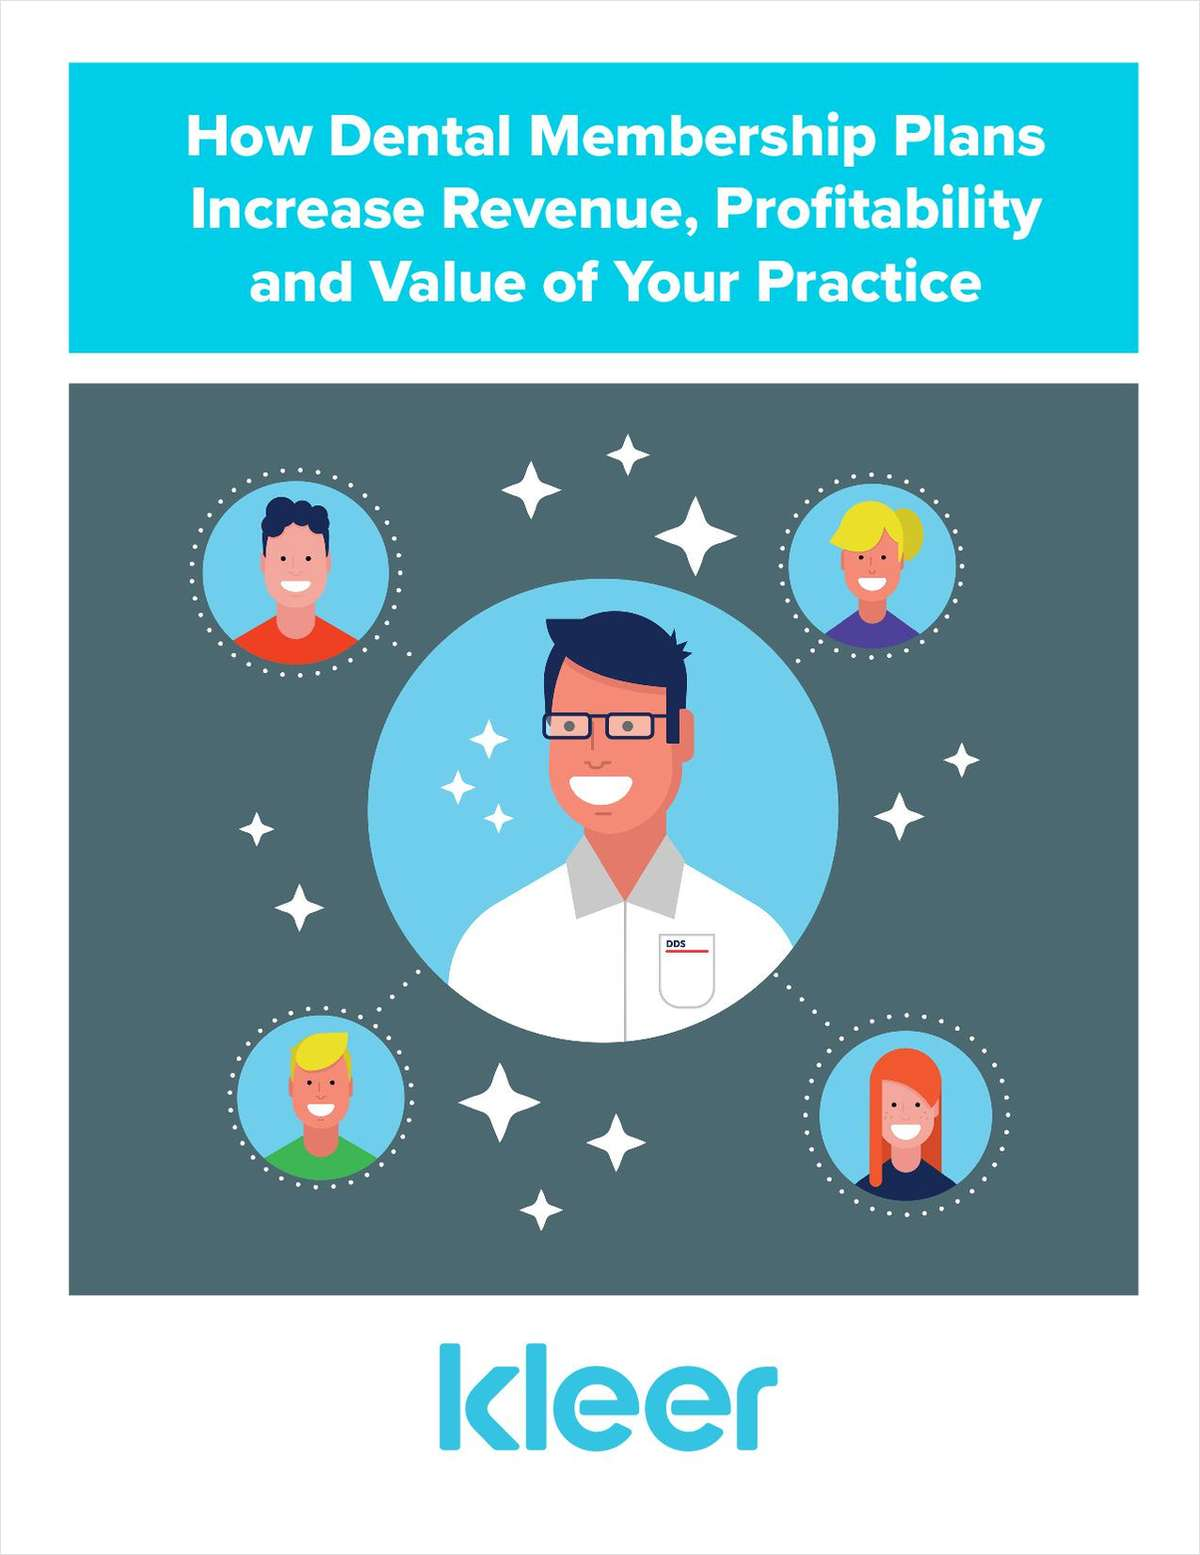 How Dental Membership Plans Increase Revenue, Profitability and Value of Your Practice